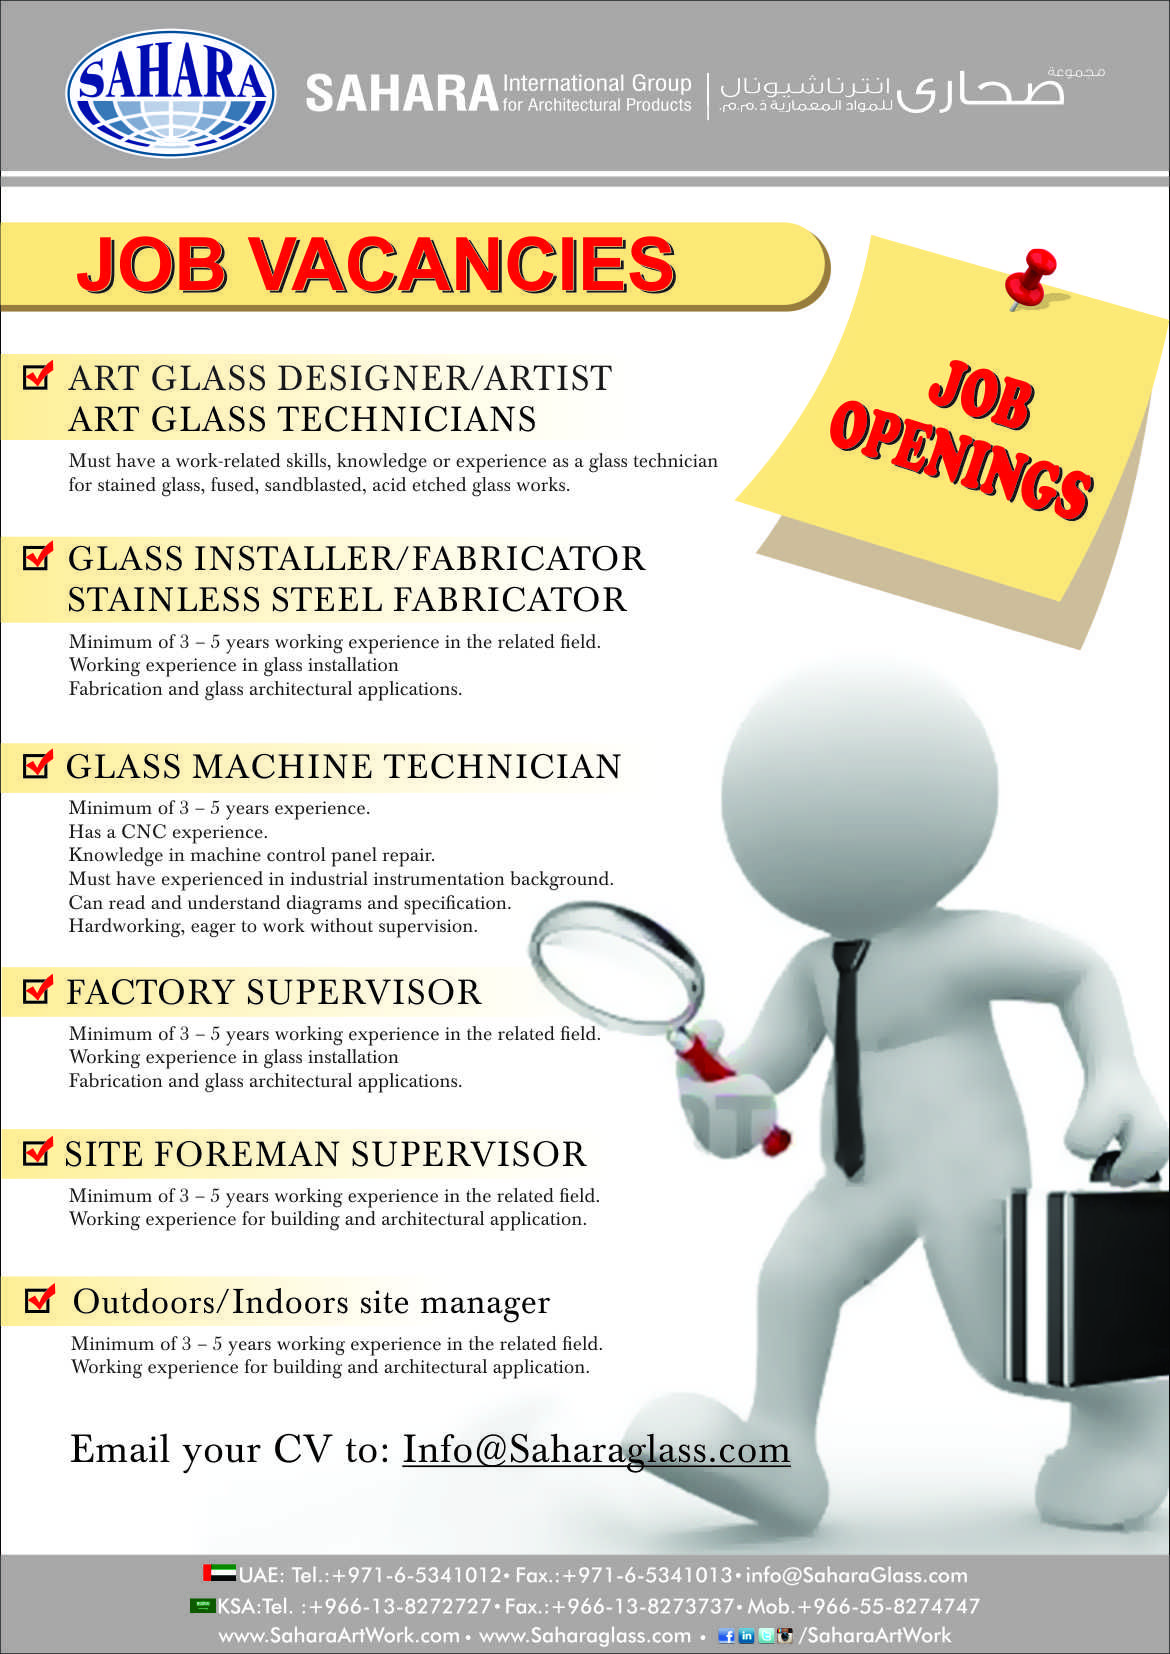 Intools Administrator Cover Letter Working Without Supervision Best Images About Sahara Job Openings